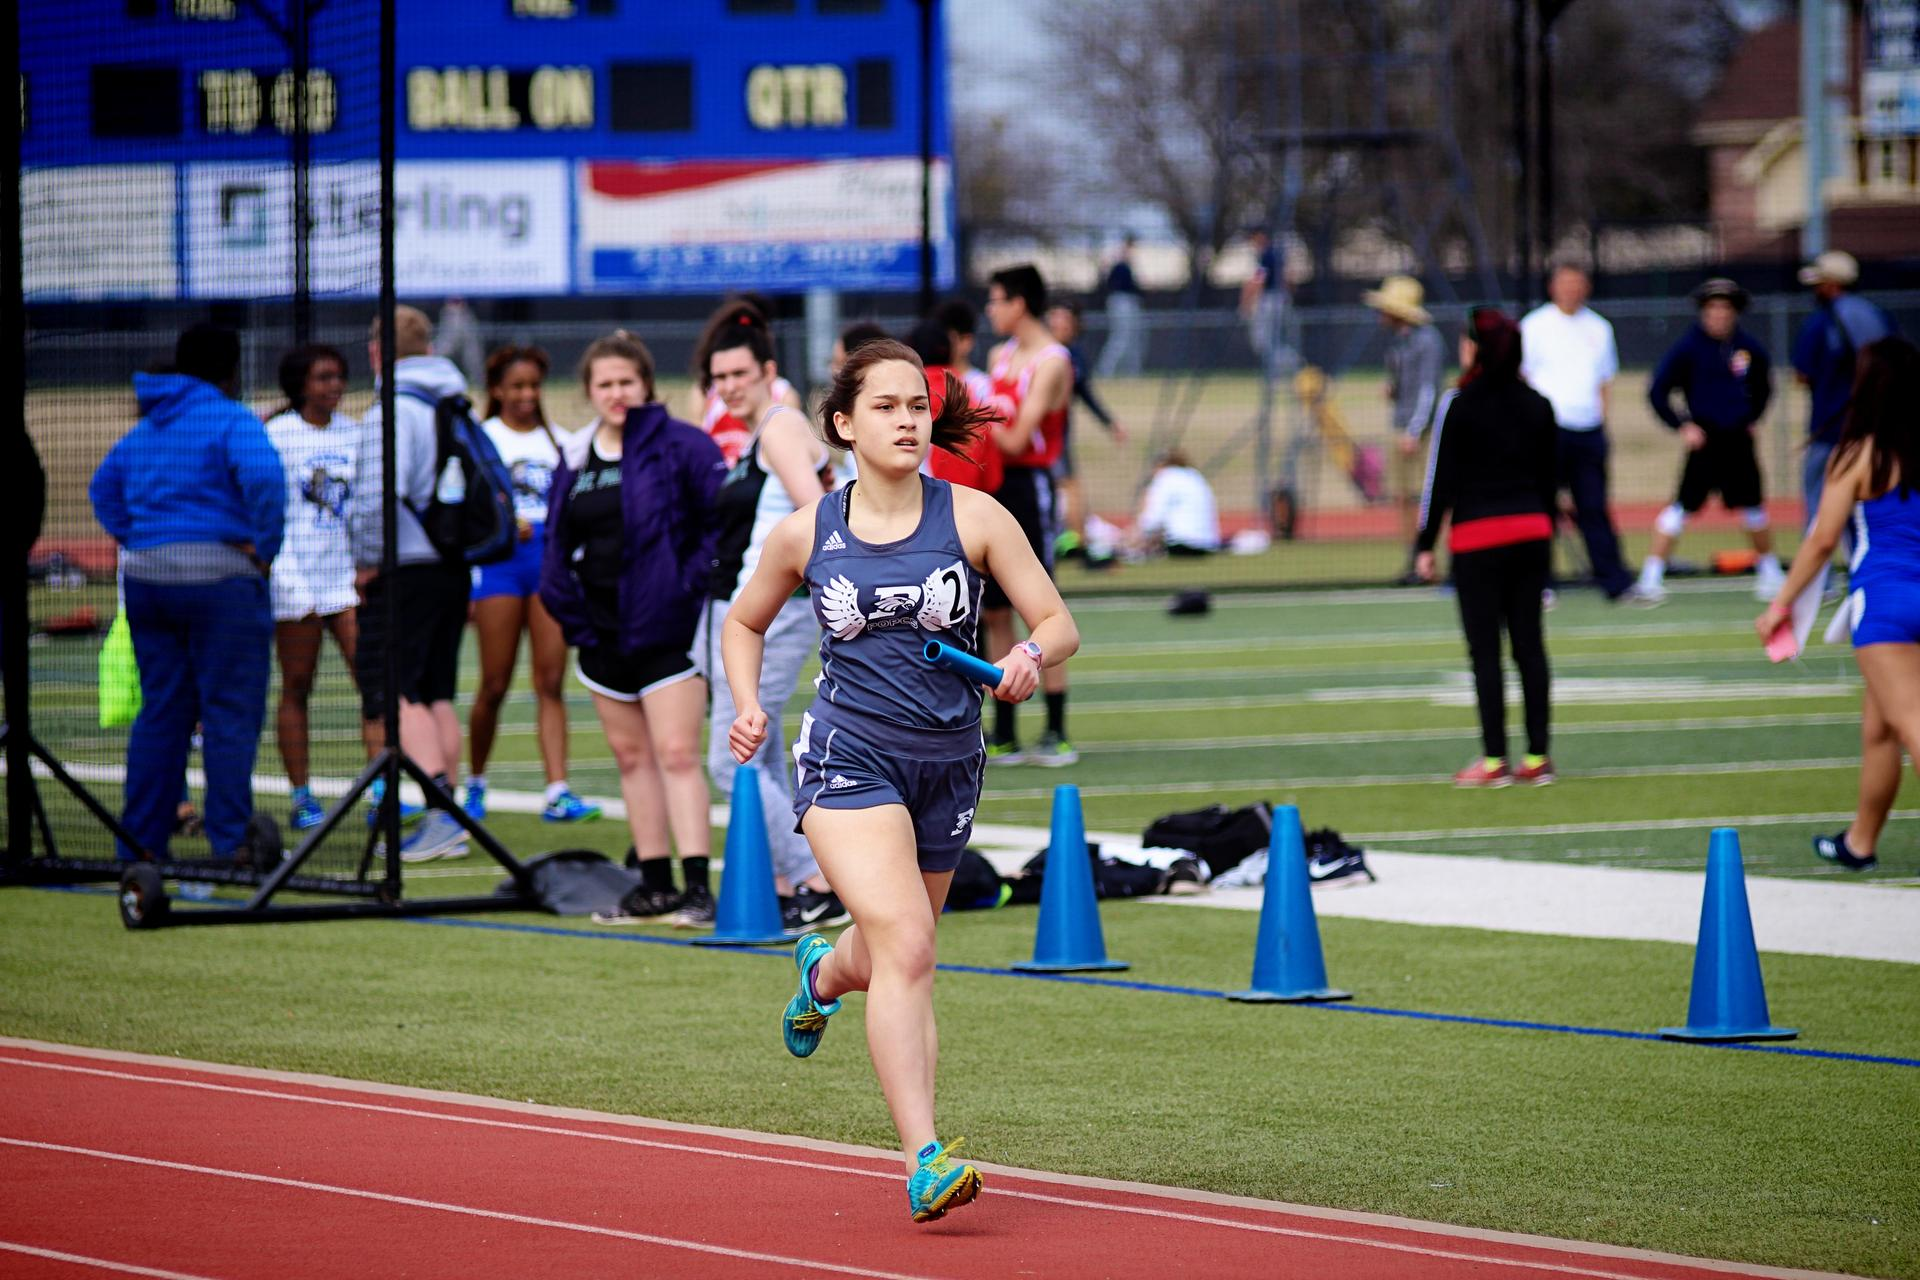 Girl running in track meet